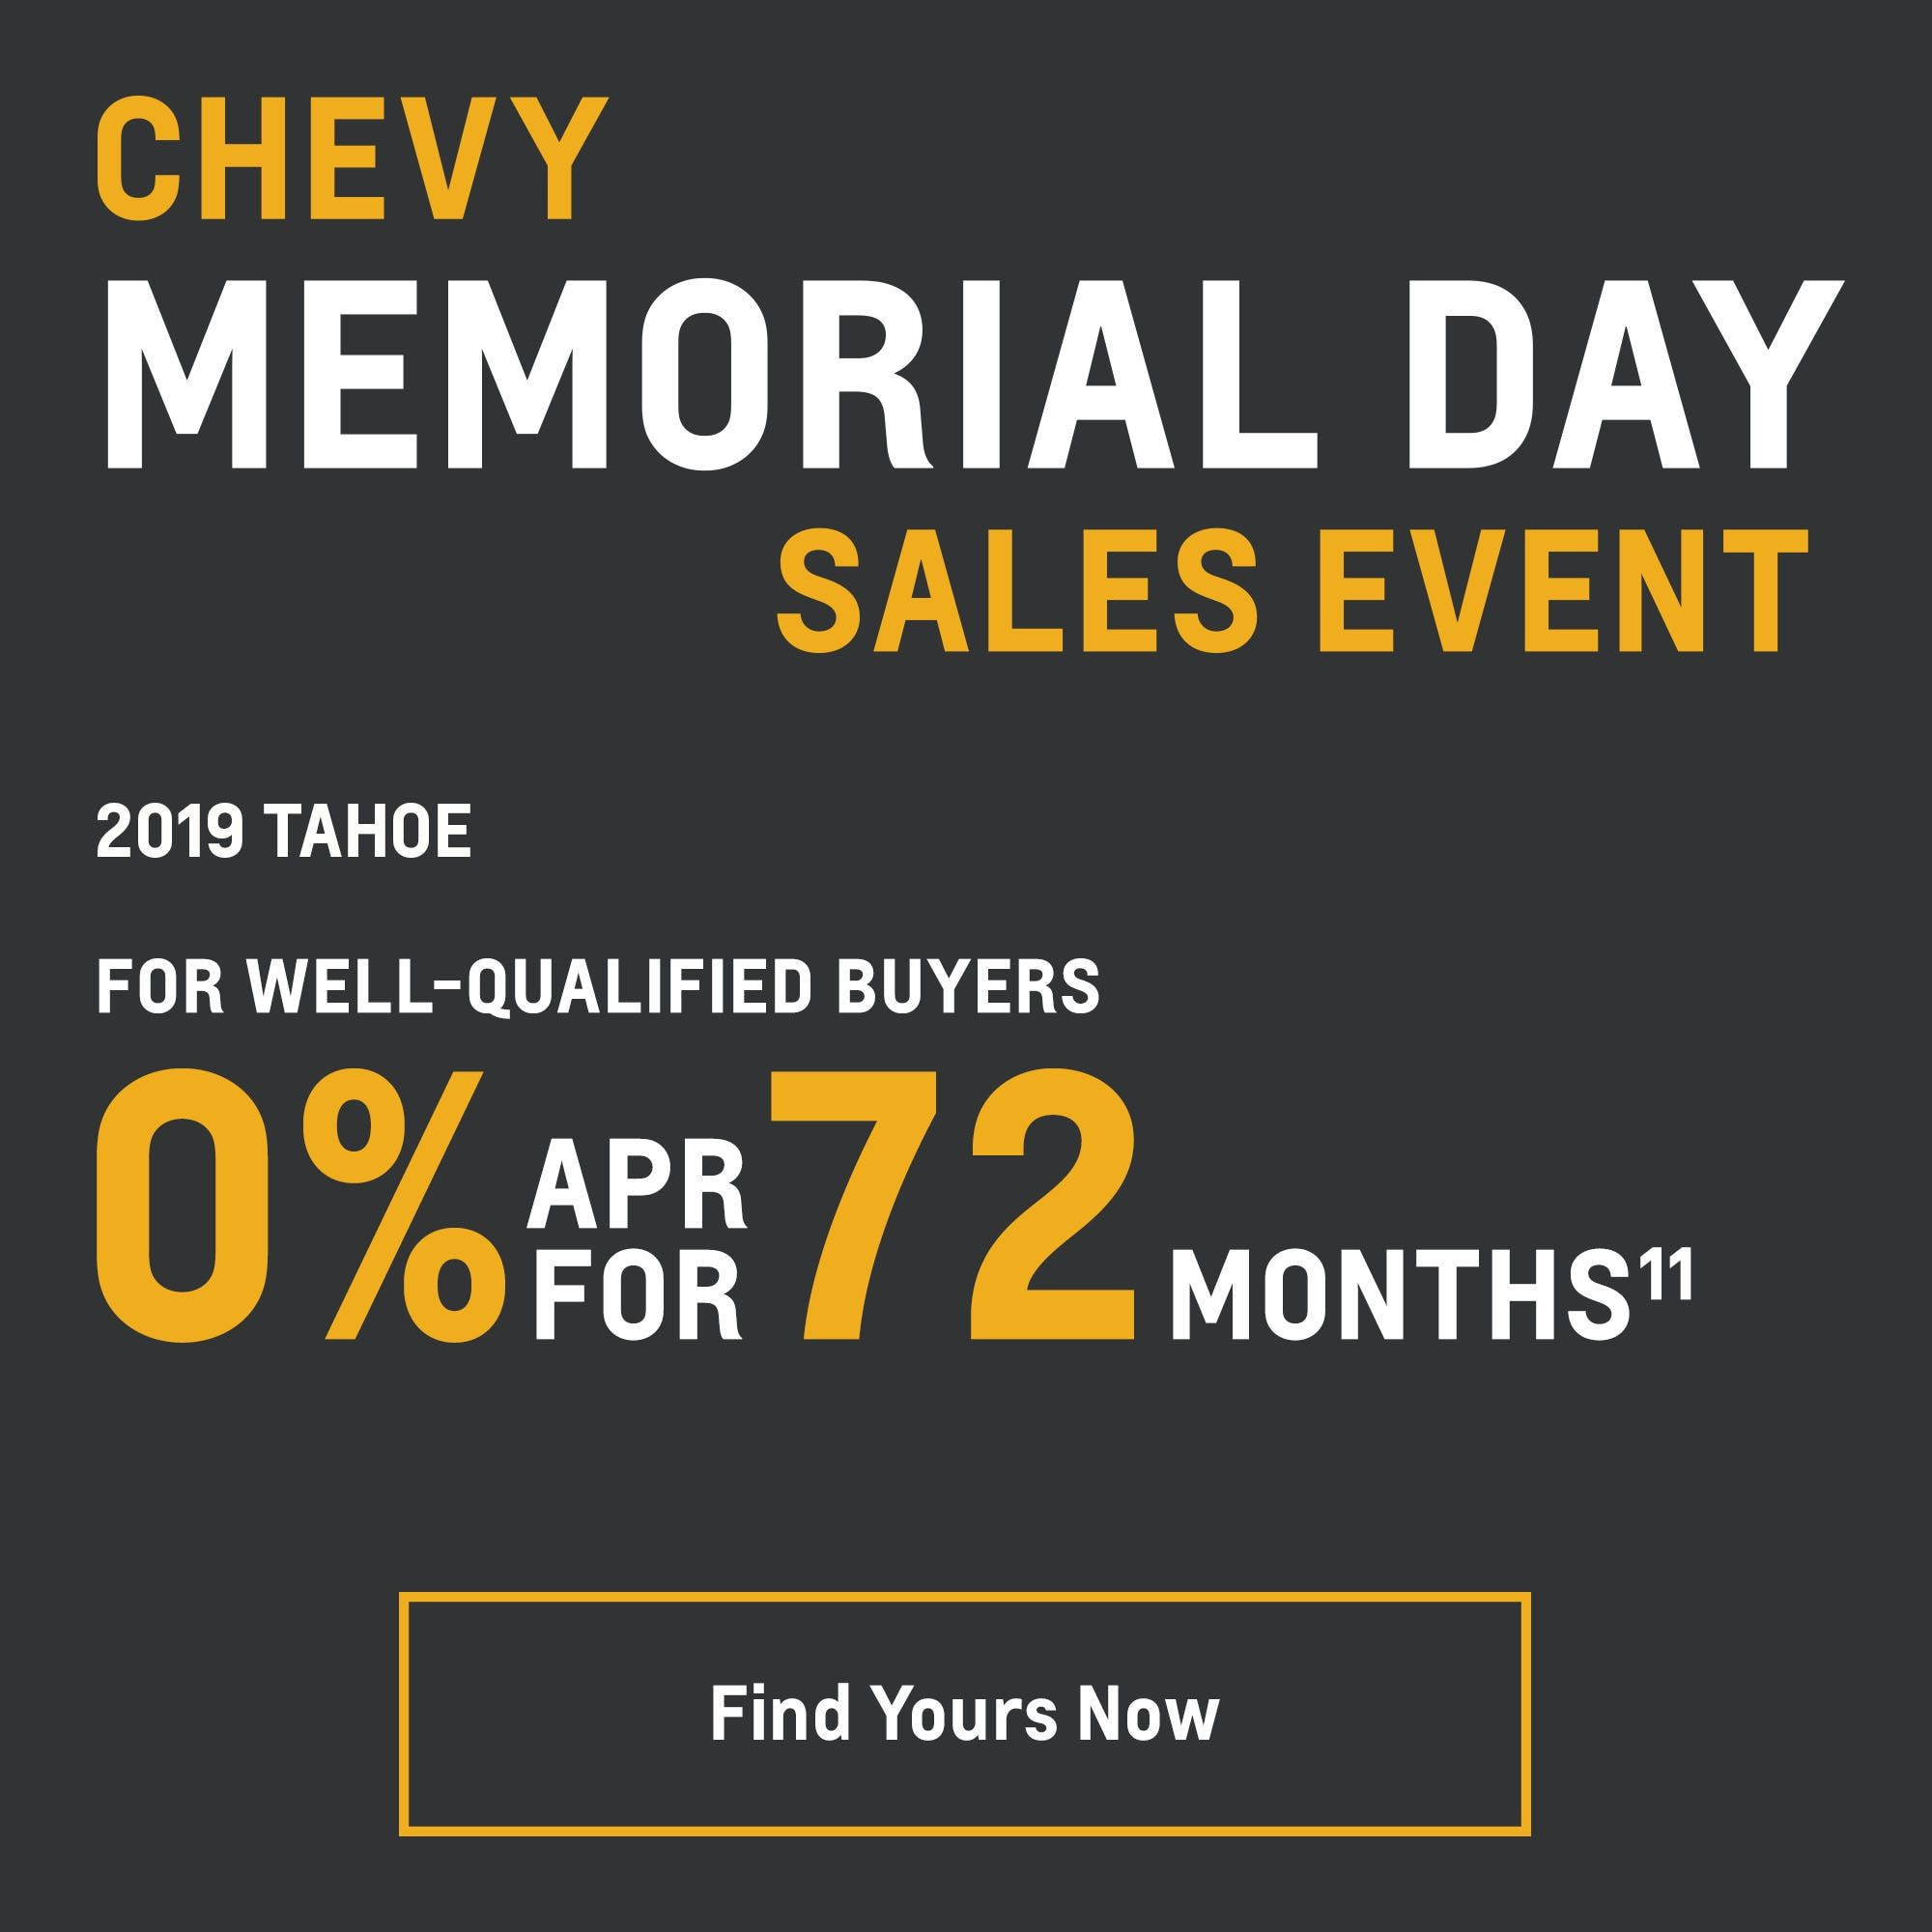 Current Chevy Deals Offers New Car Deals Car Deals New Cars